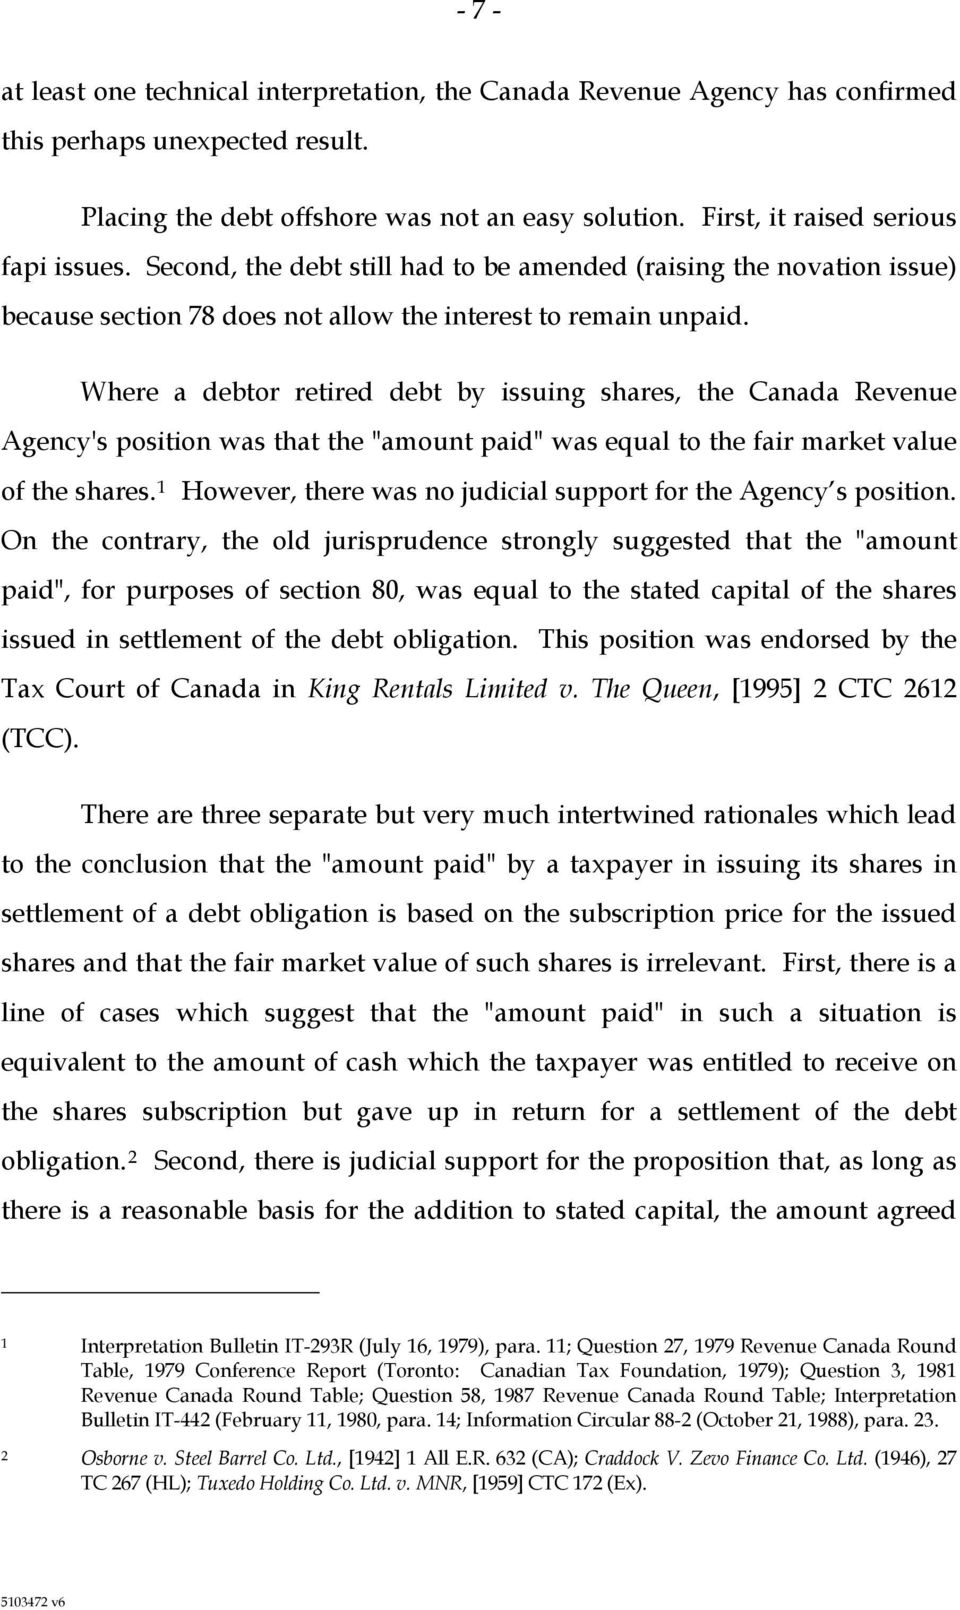 "Where a debtor retired debt by issuing shares, the Canada Revenue Agency's position was that the ""amount paid"" was equal to the fair market value of the shares."